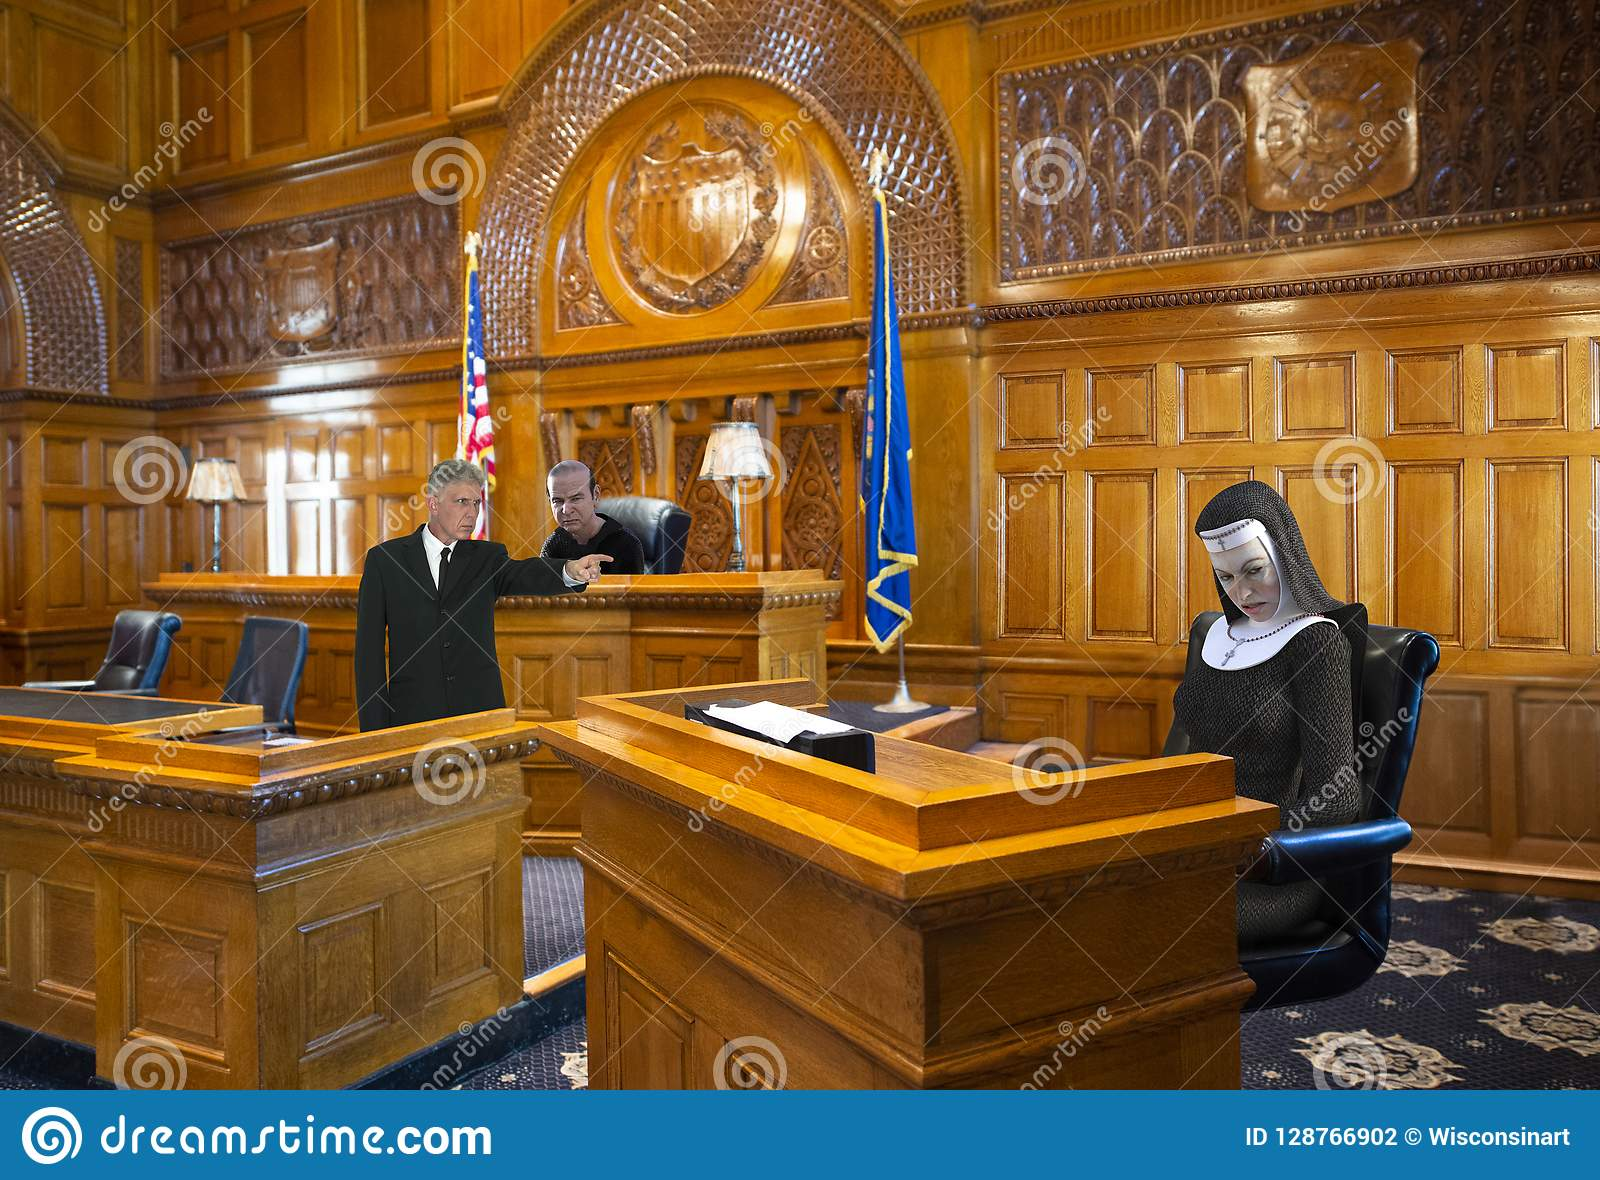 Funny Courtroom, Nun, Judge, Lawyer